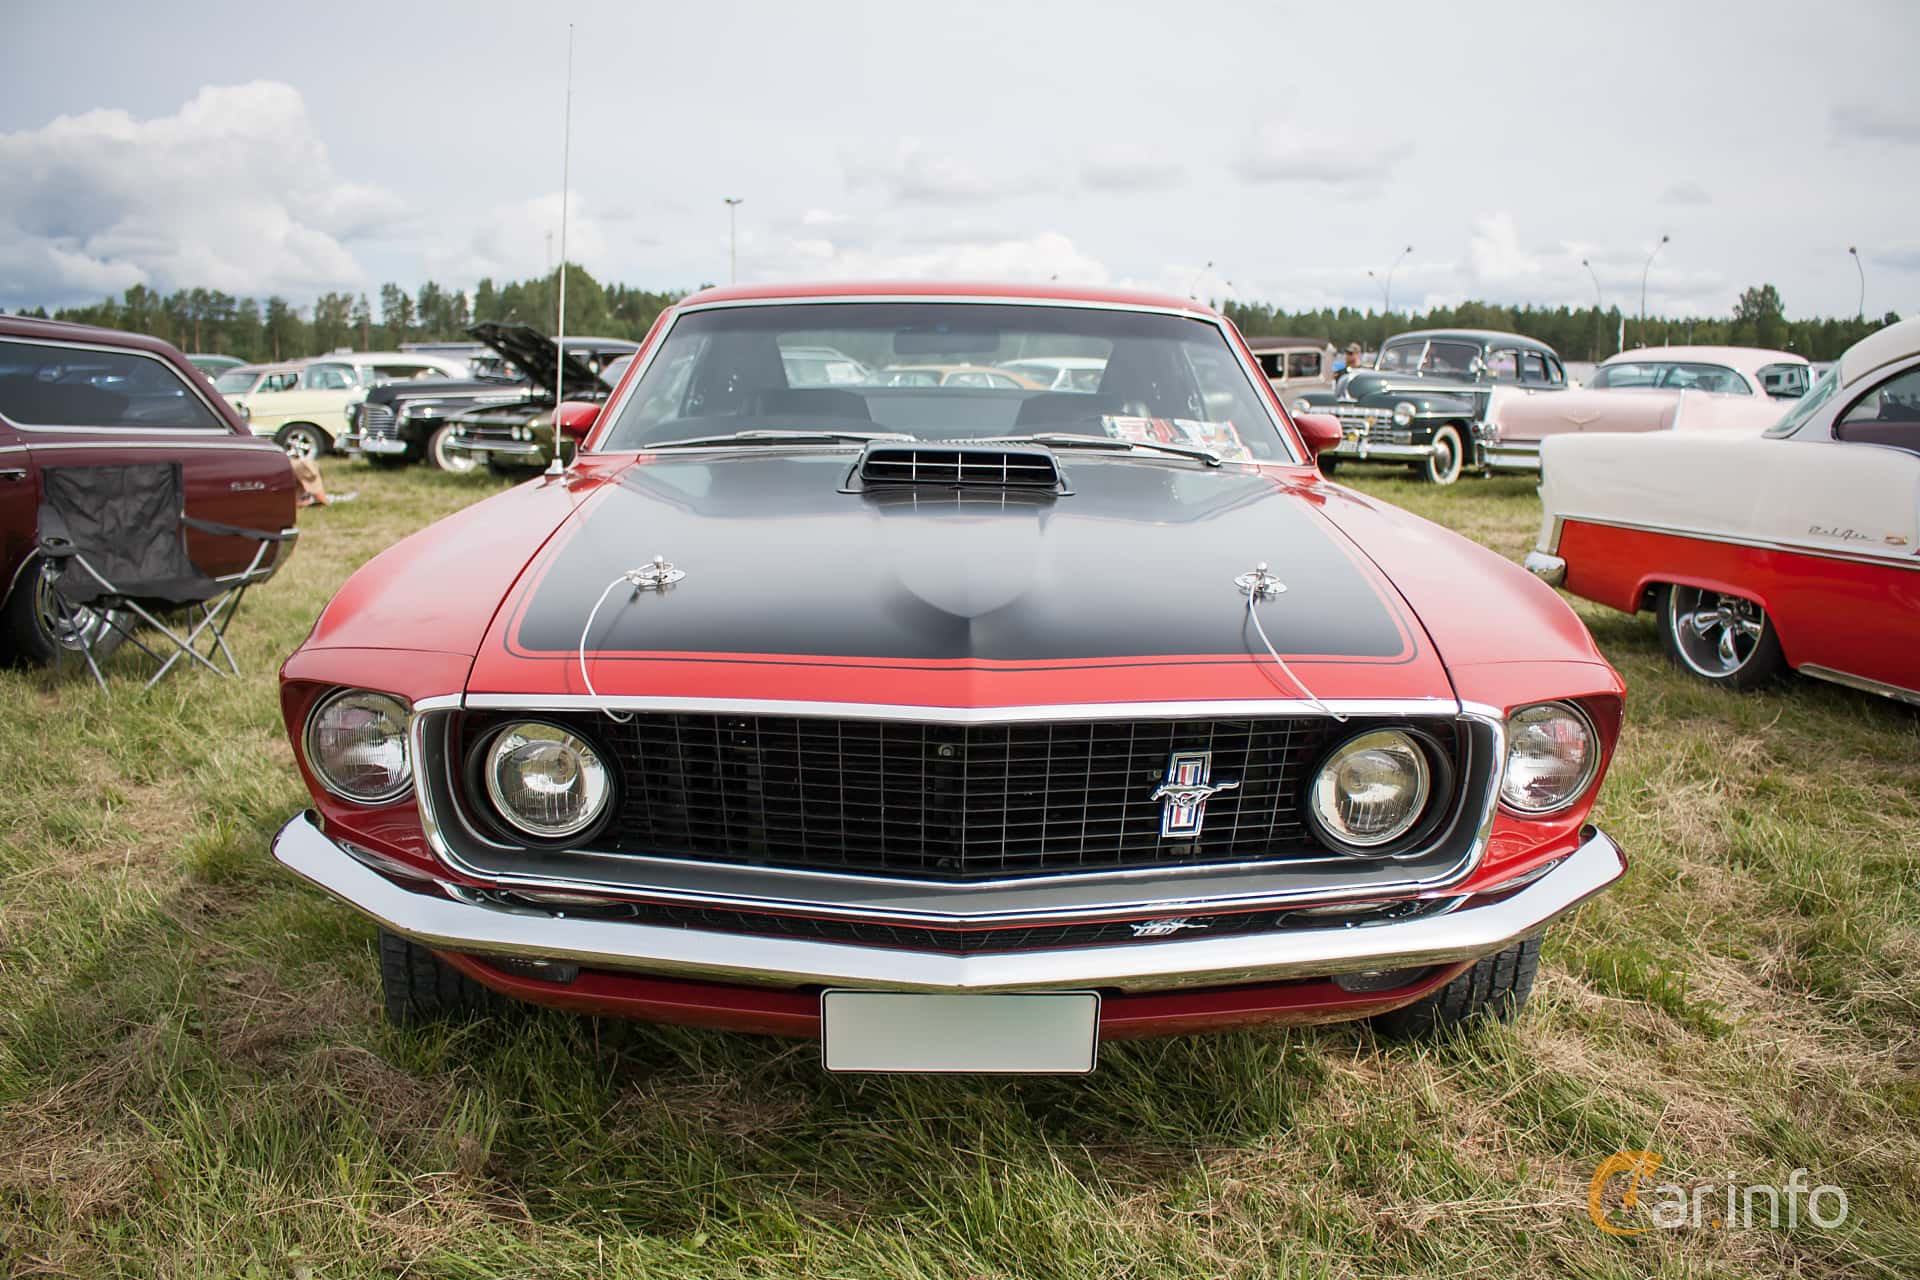 Ford Mustang Mach I 5.8 V8 Automatic, 254hp, 1969 at Classic Car Week Rättvik 2015